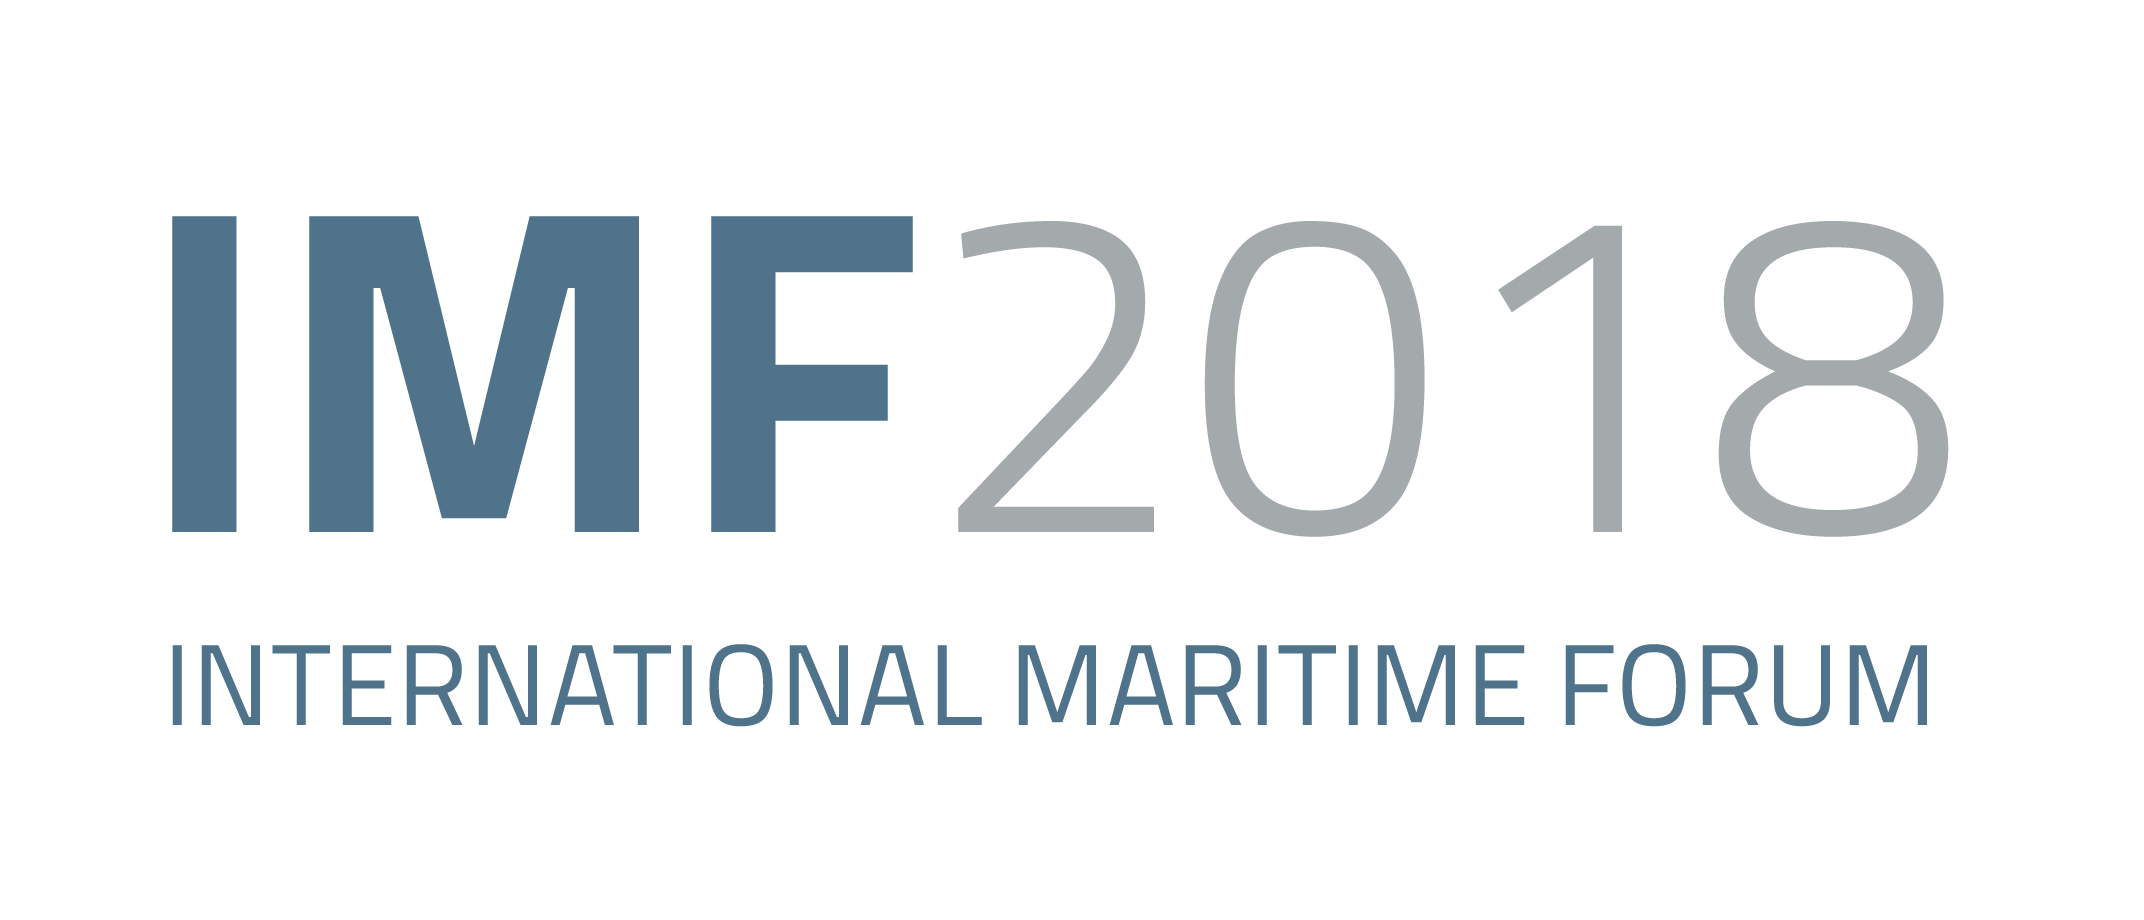 International Maritime Forum